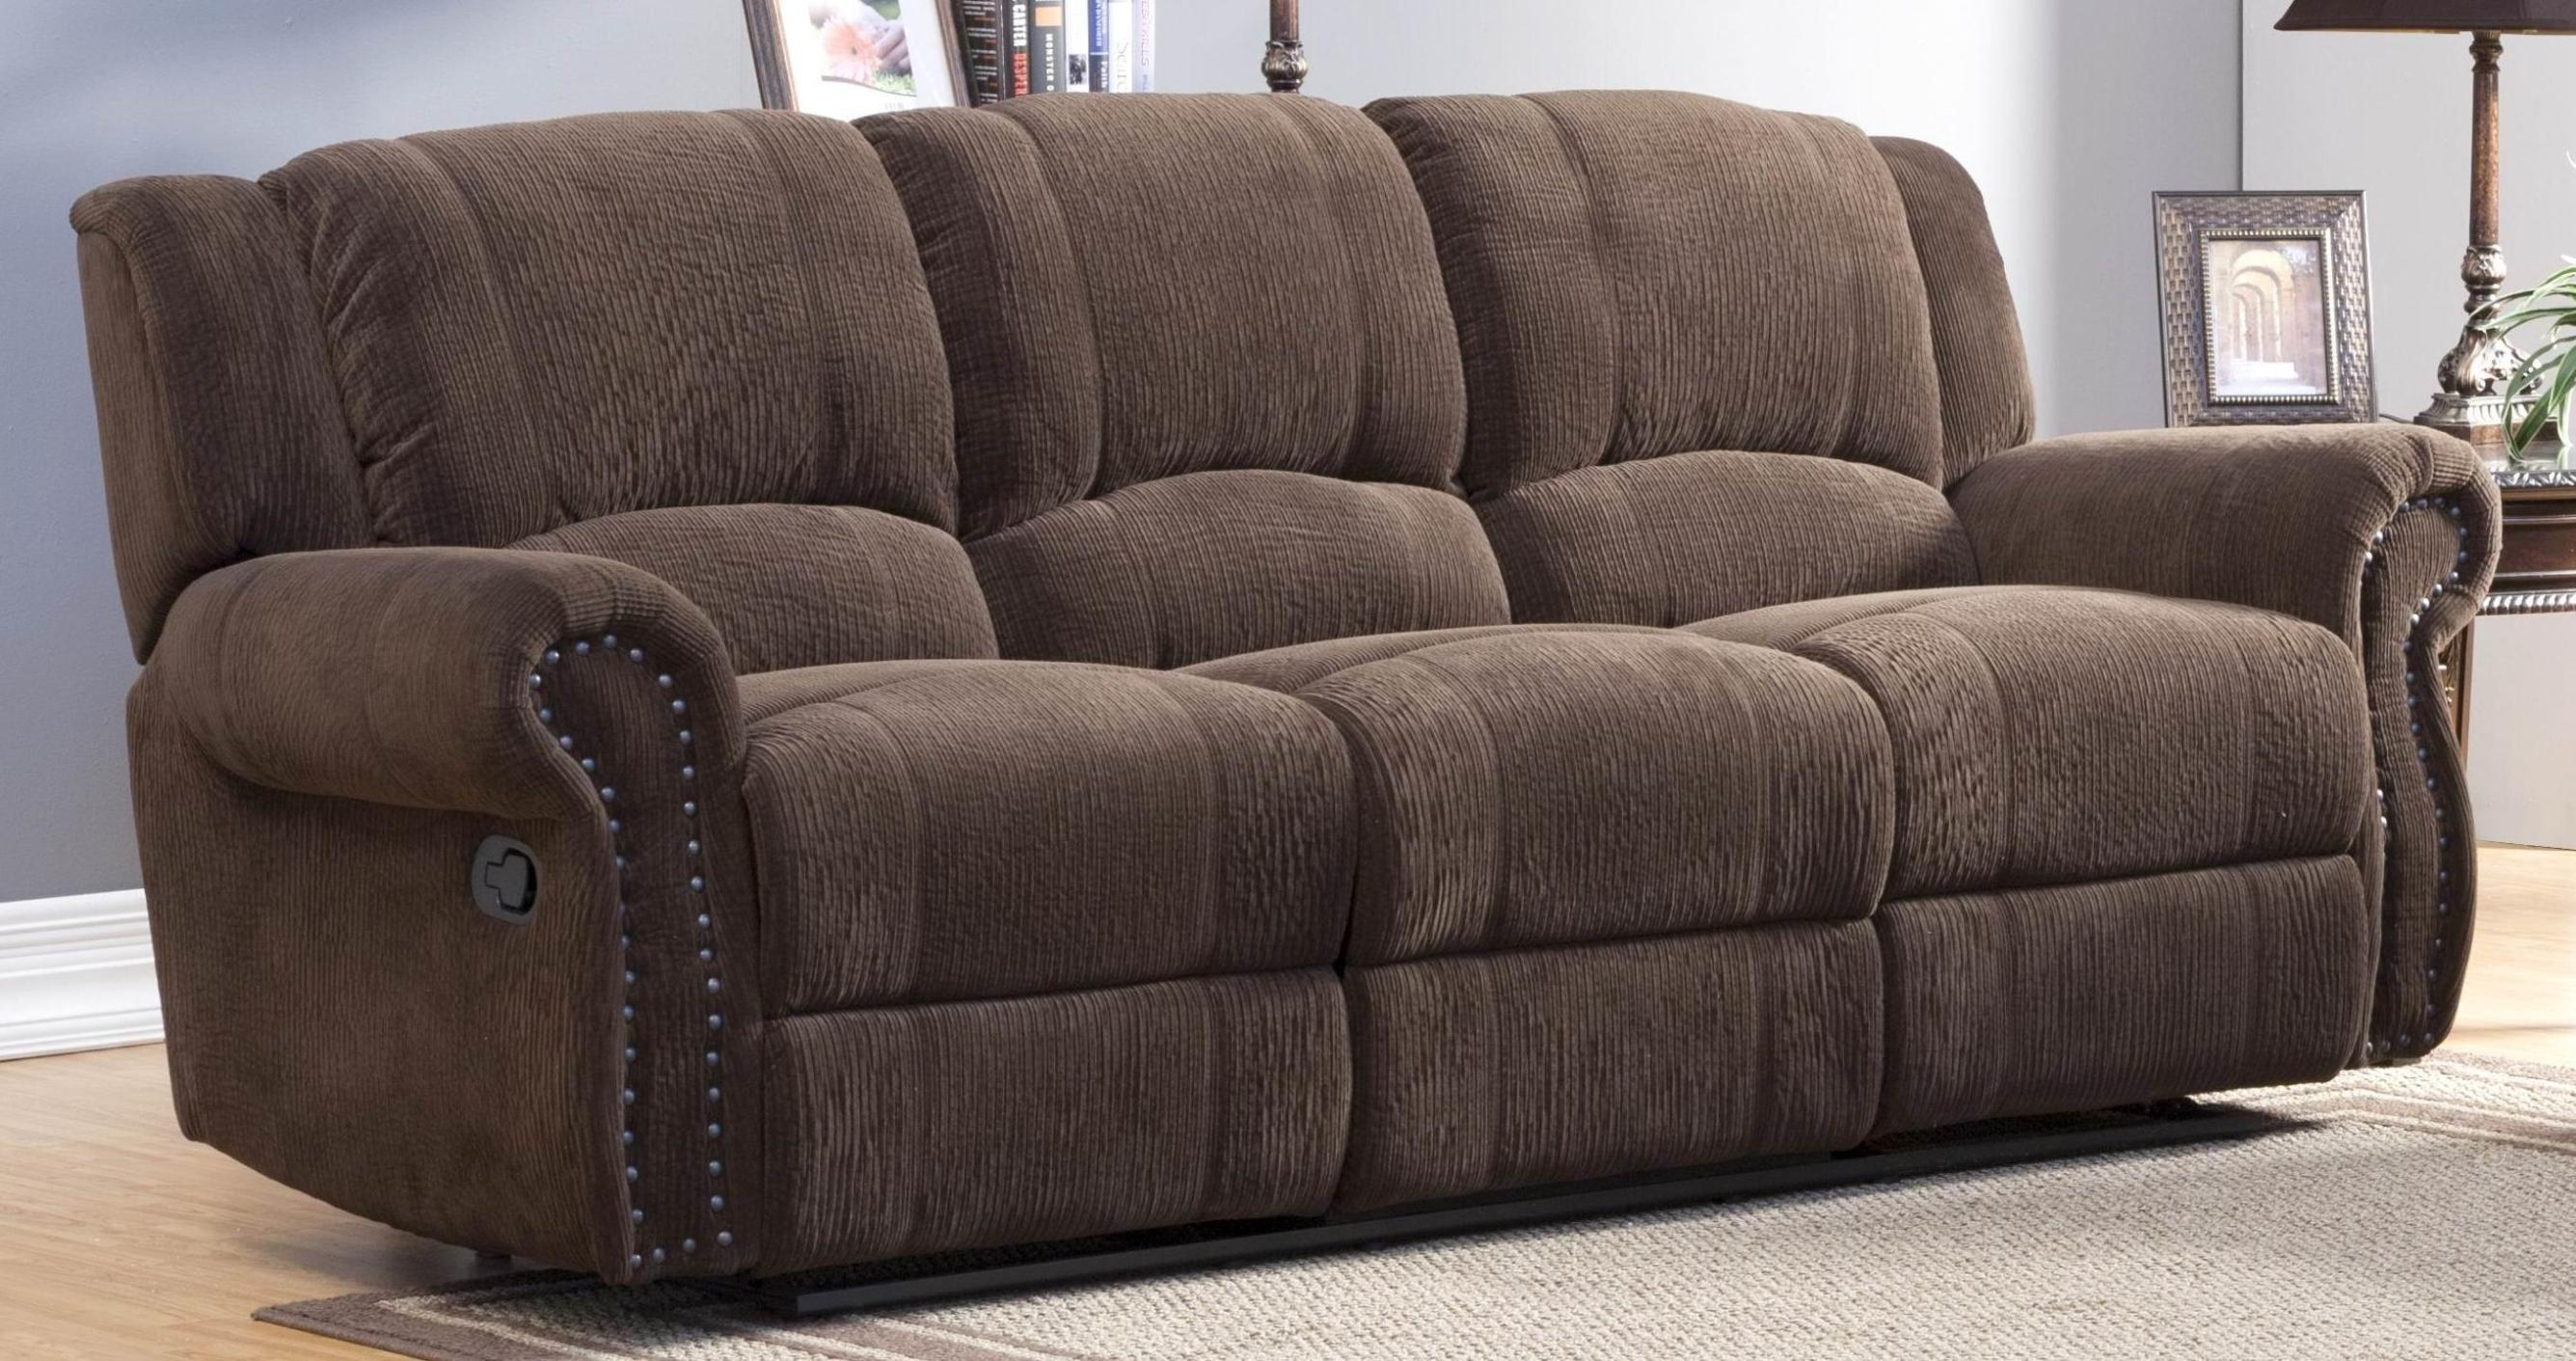 Curved Sofa Furniture Reviews: Curved Sectional Sofa Canada In Individual Piece Sectional Sofas (Image 6 of 20)